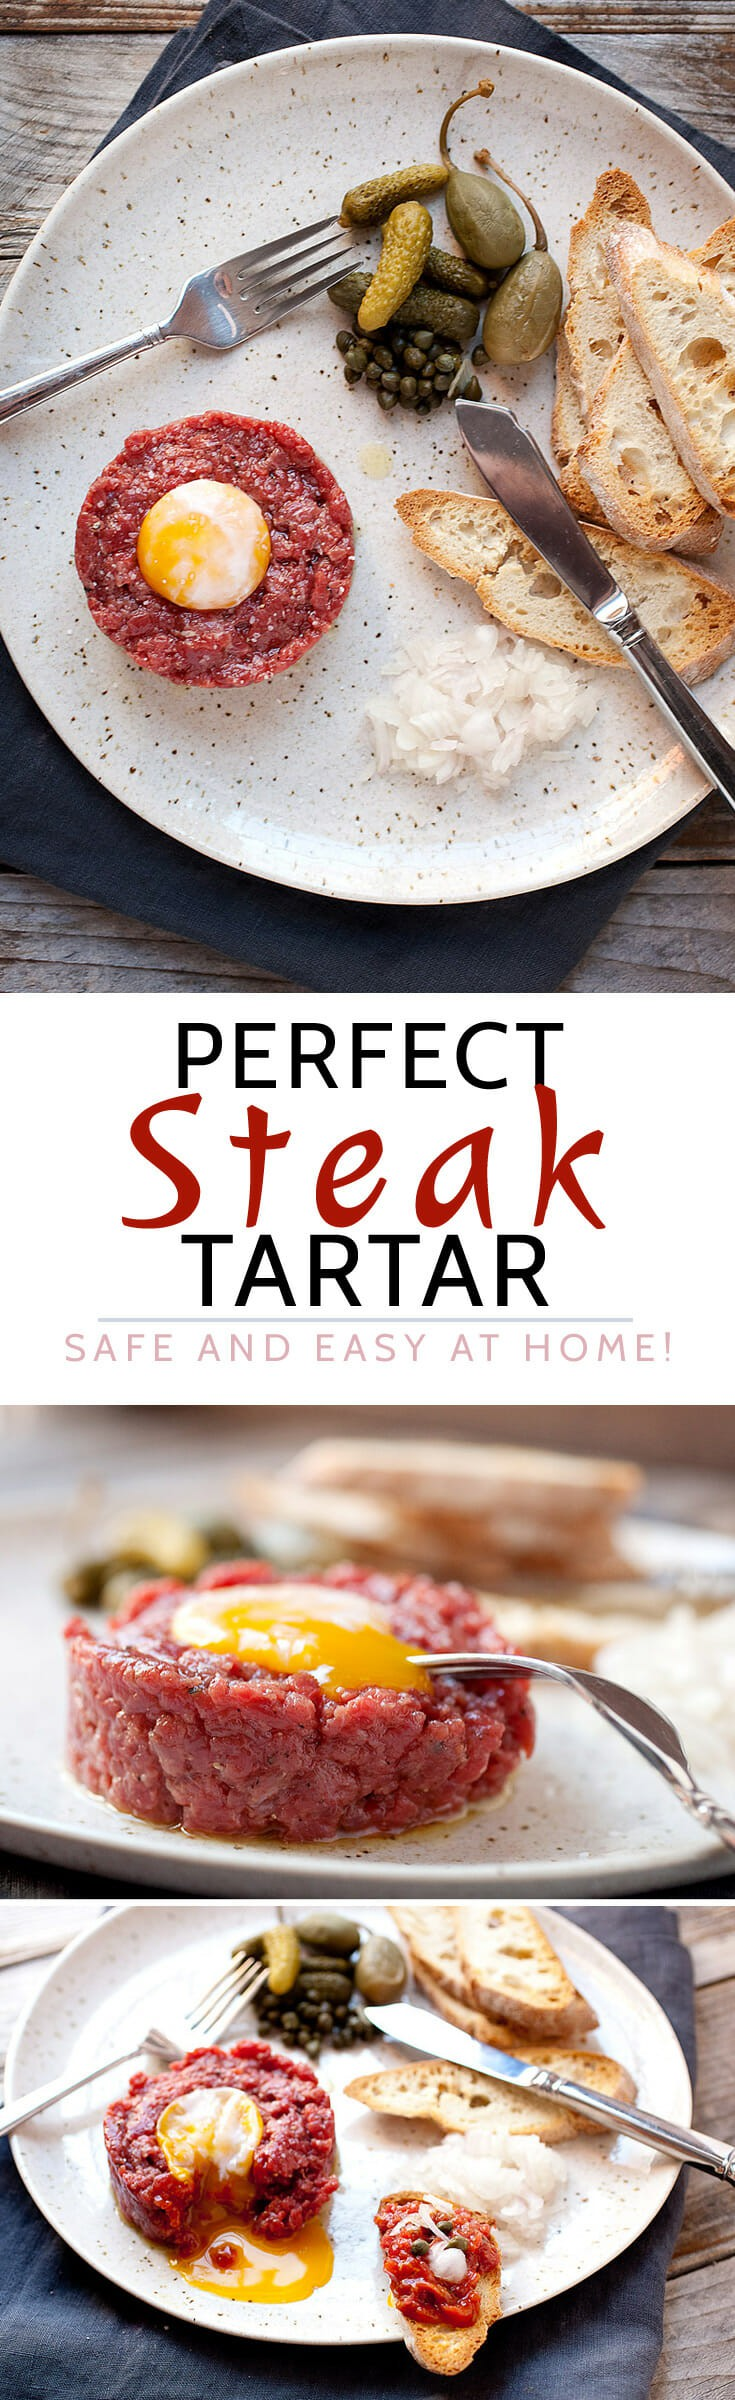 Perfect Steak Tartare at Home! Here's how to make the classic French appetizer SAFELY at home! It's really easy with a few simple tips and no stove required! Stop over-paying for it in fancy restaurants! | macheesmo.com #steak #tartare #homemade